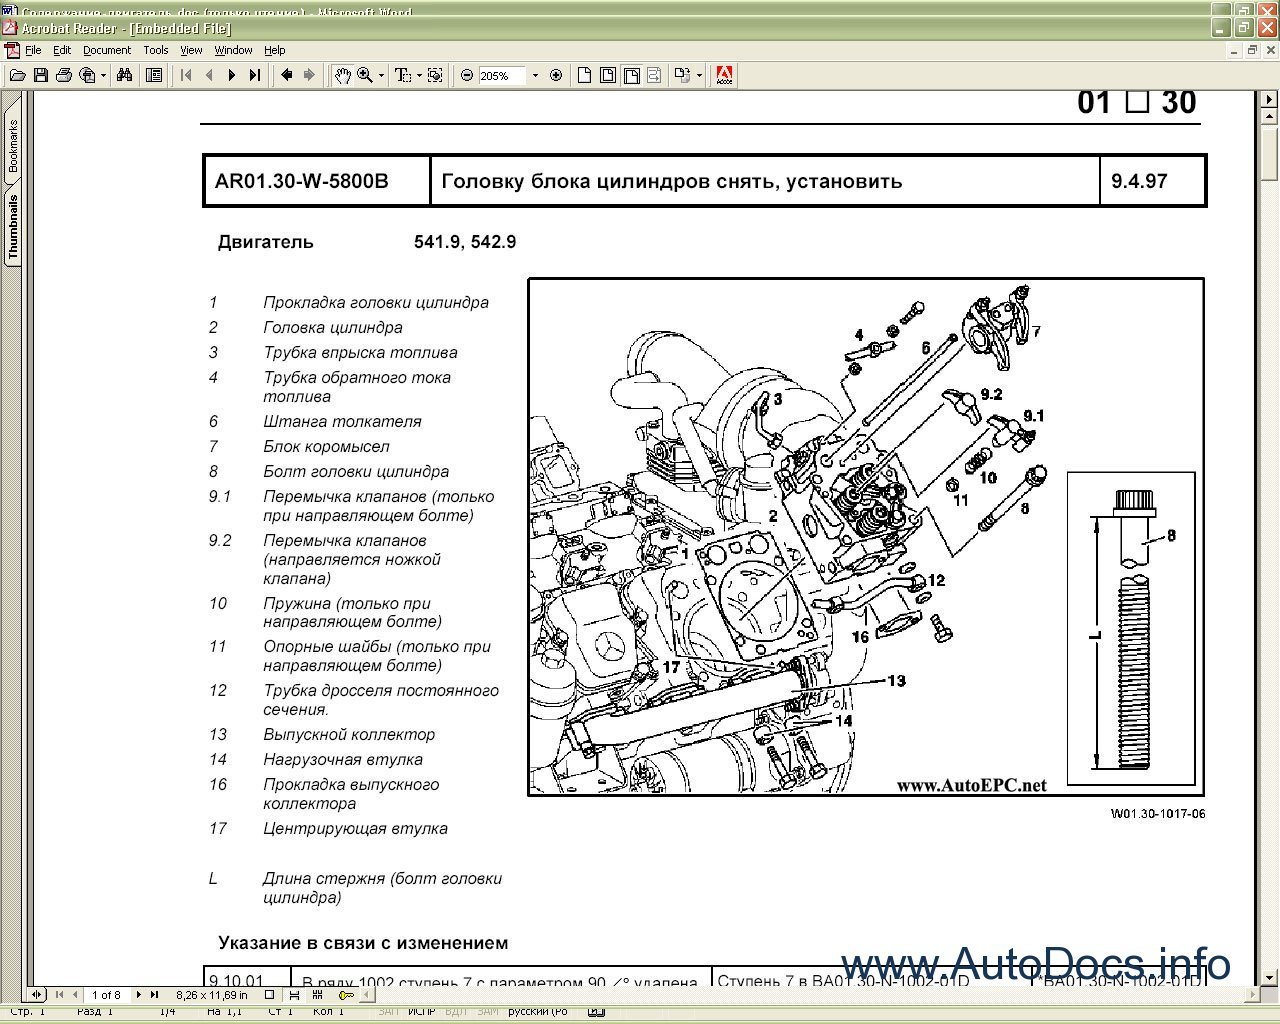 Mercedes Benz Repair Diagrams Good Owner Guide Website 2204 Battery Diagram For Wire Data Schema Actros Service Documentation Manual 1974 Wiring